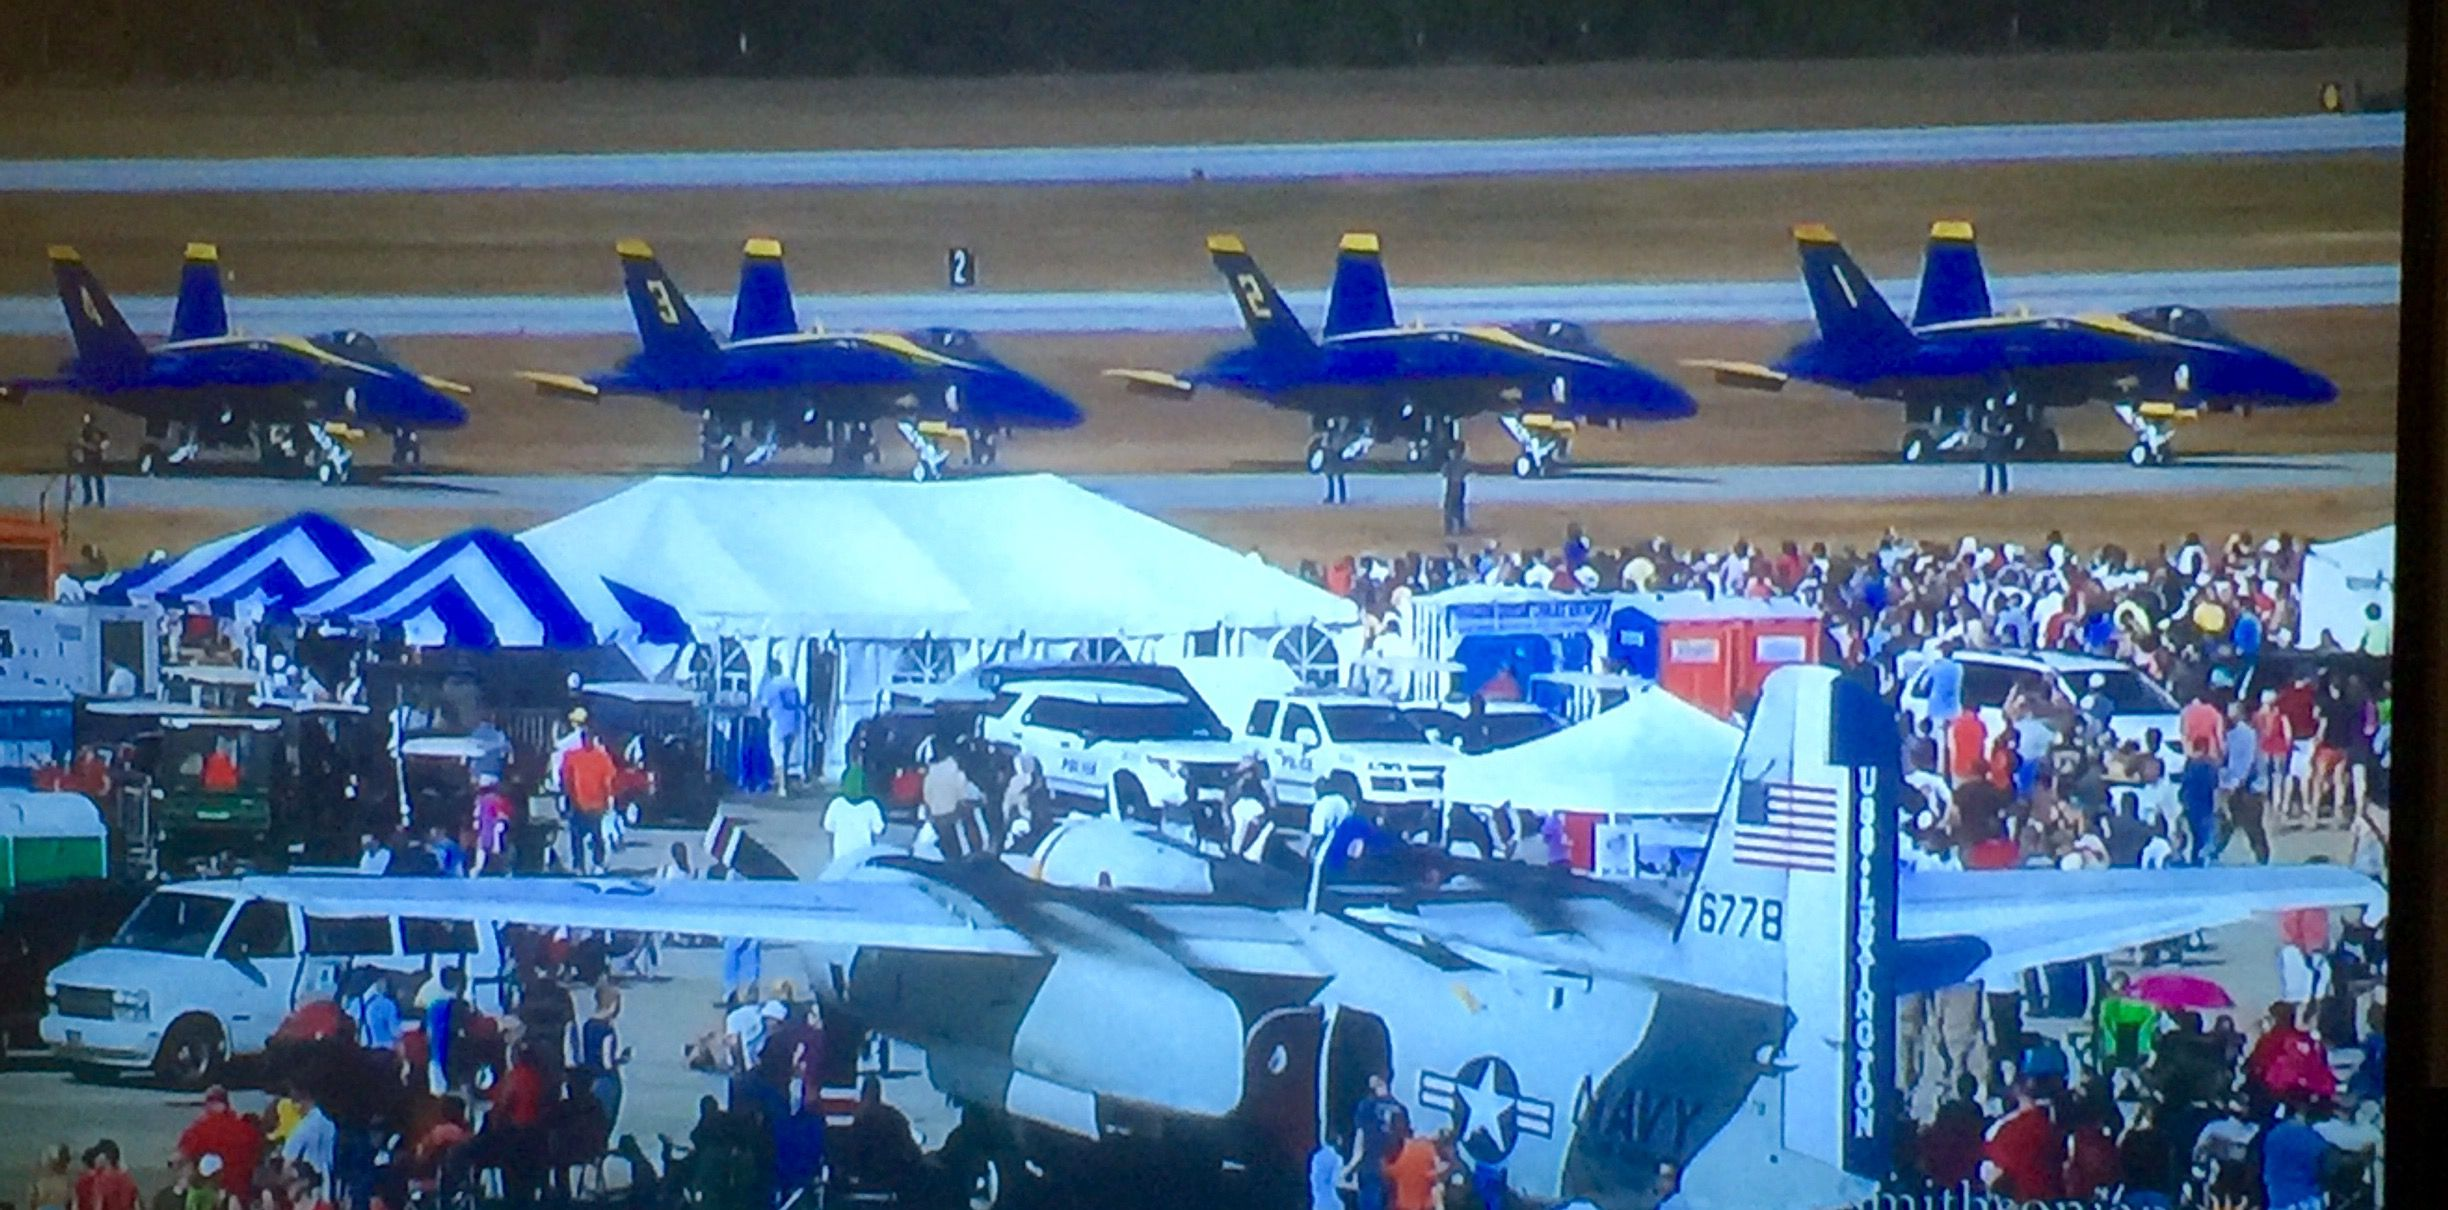 Pin by Paulie on Blue Angels Blue angels, Wrestling